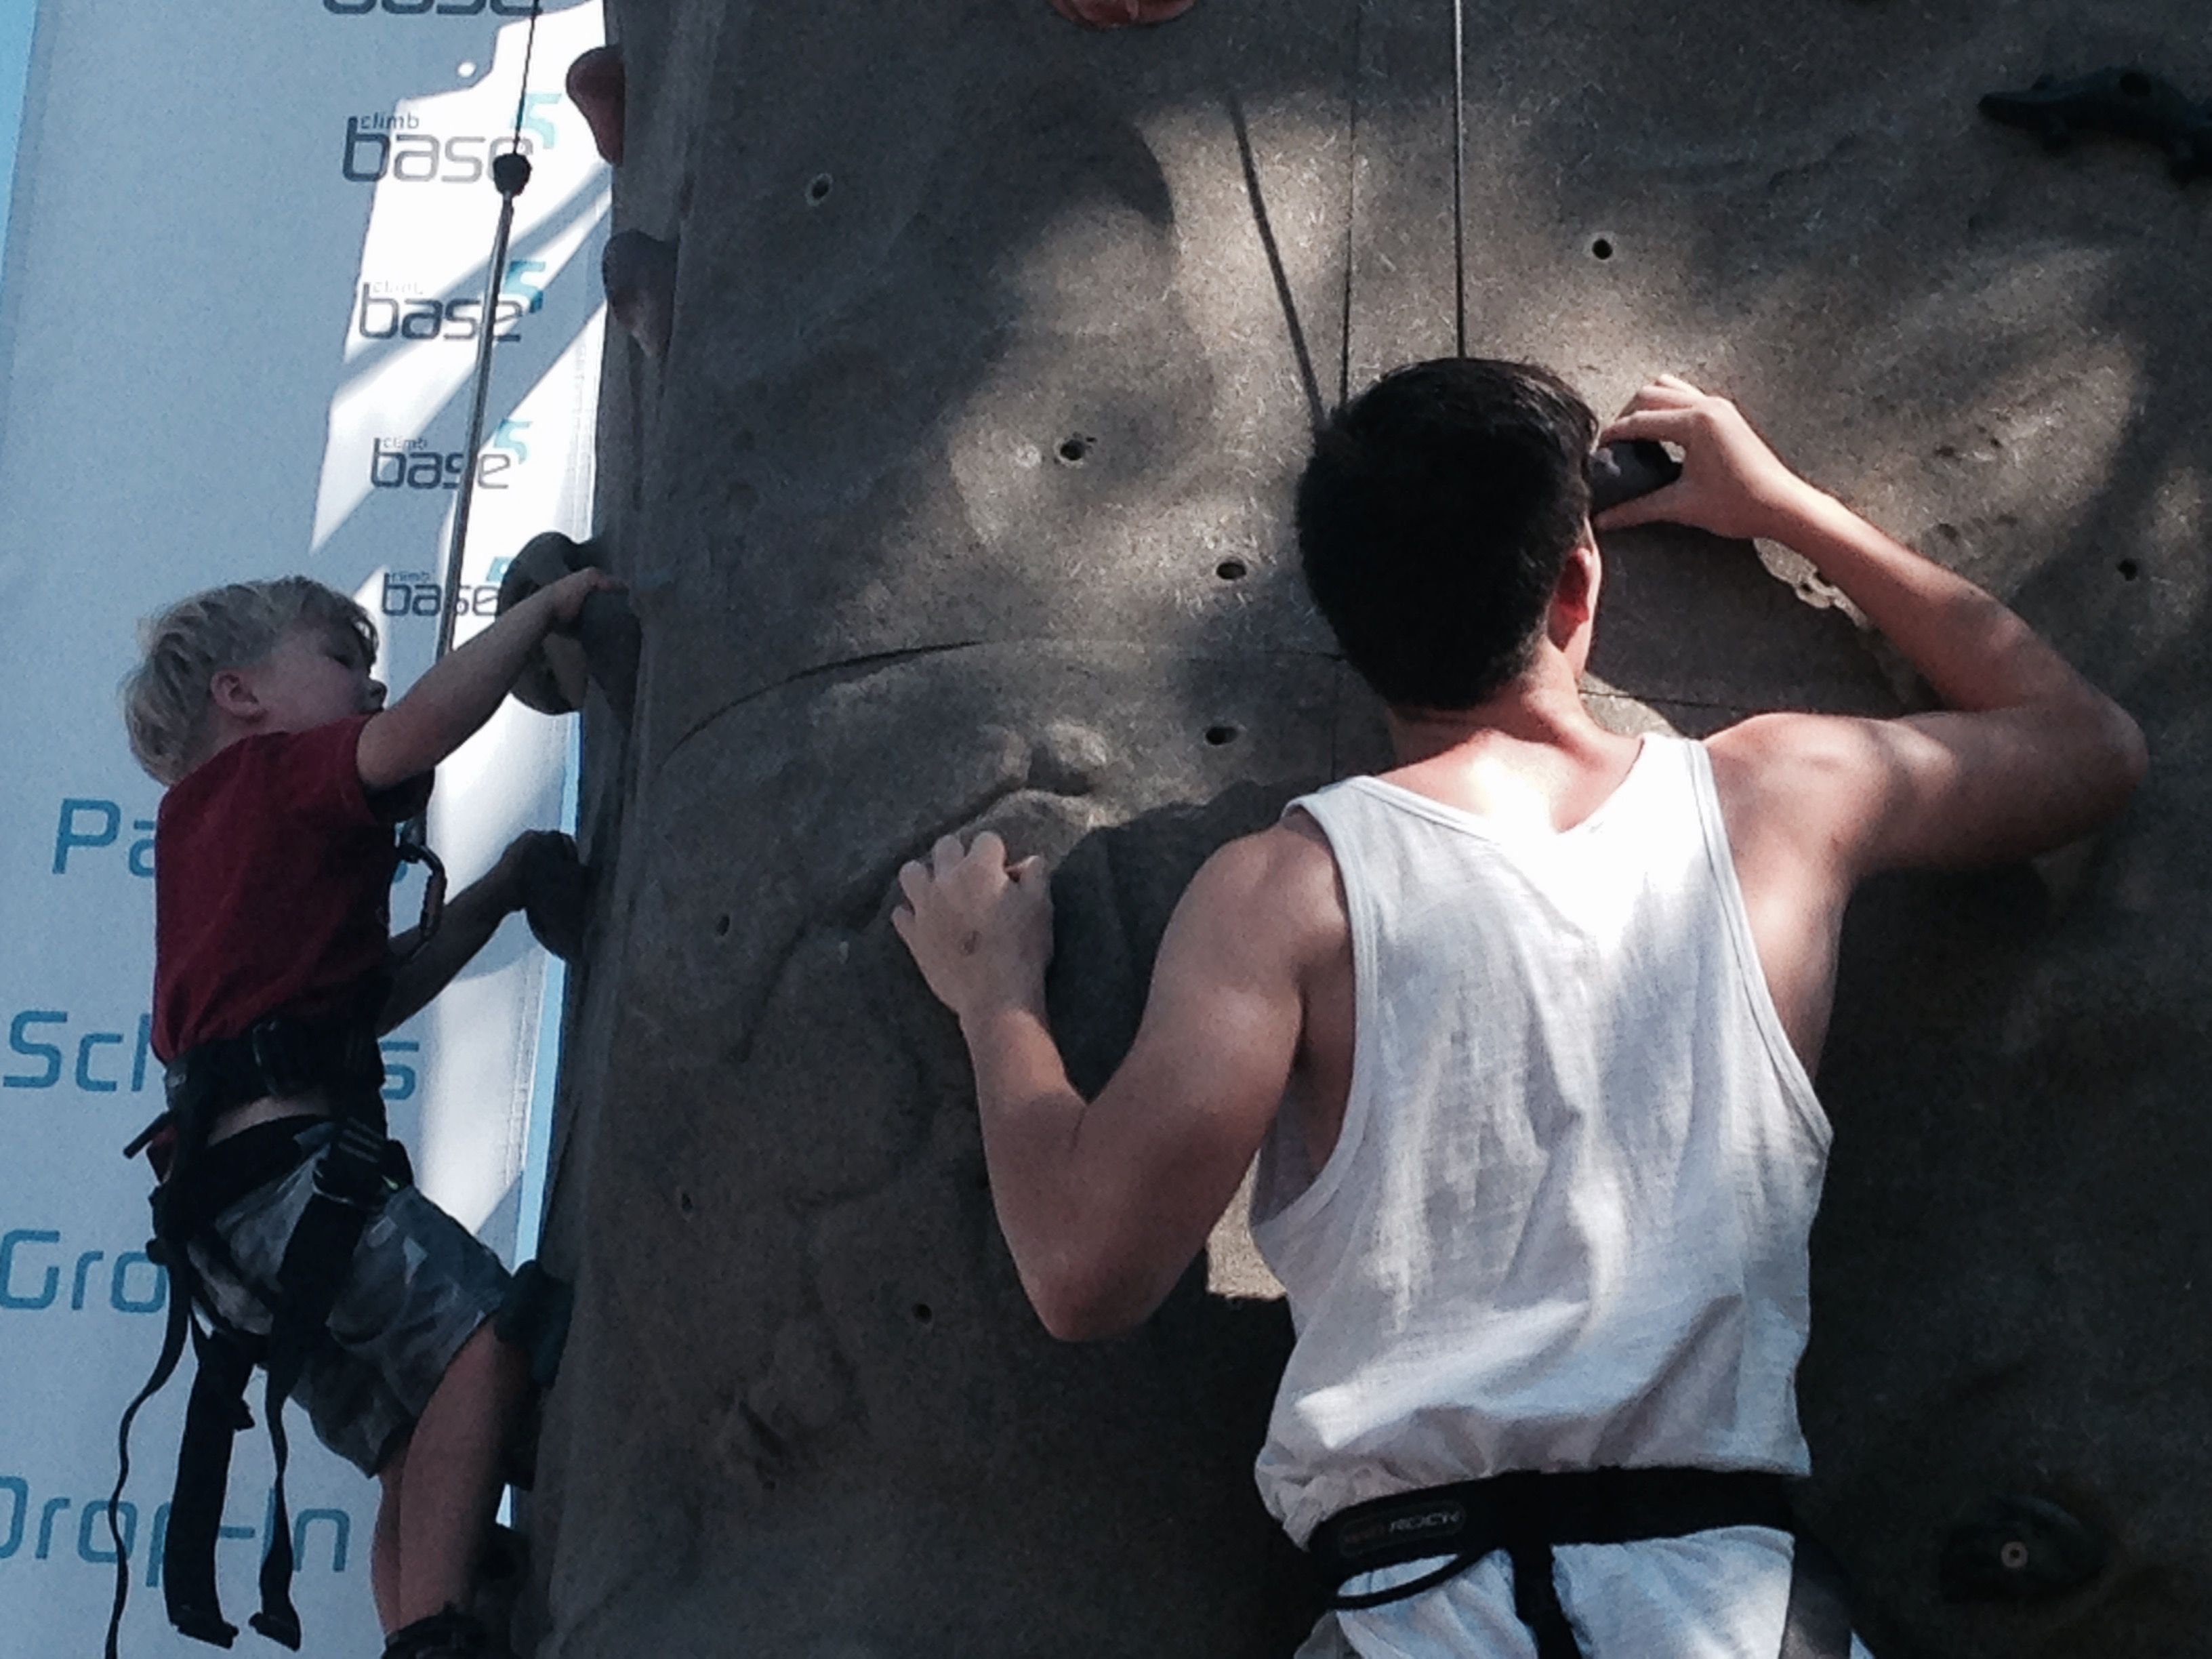 A boy and man scale a climbing wall in the sun.